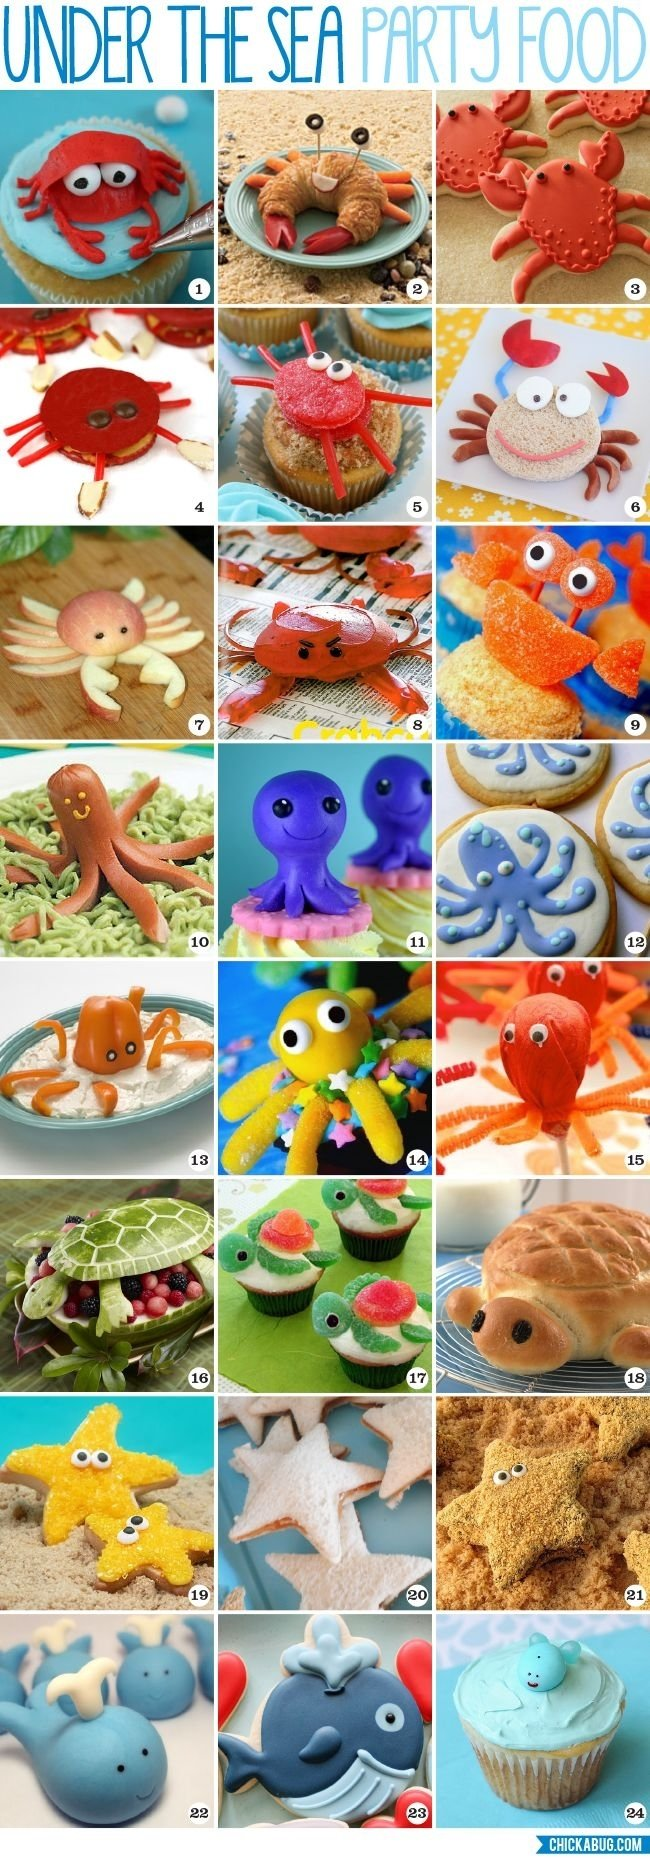 10 Cute Under The Sea Party Food Ideas under the sea party food ideas adorable recipes and tutorials 1 2020